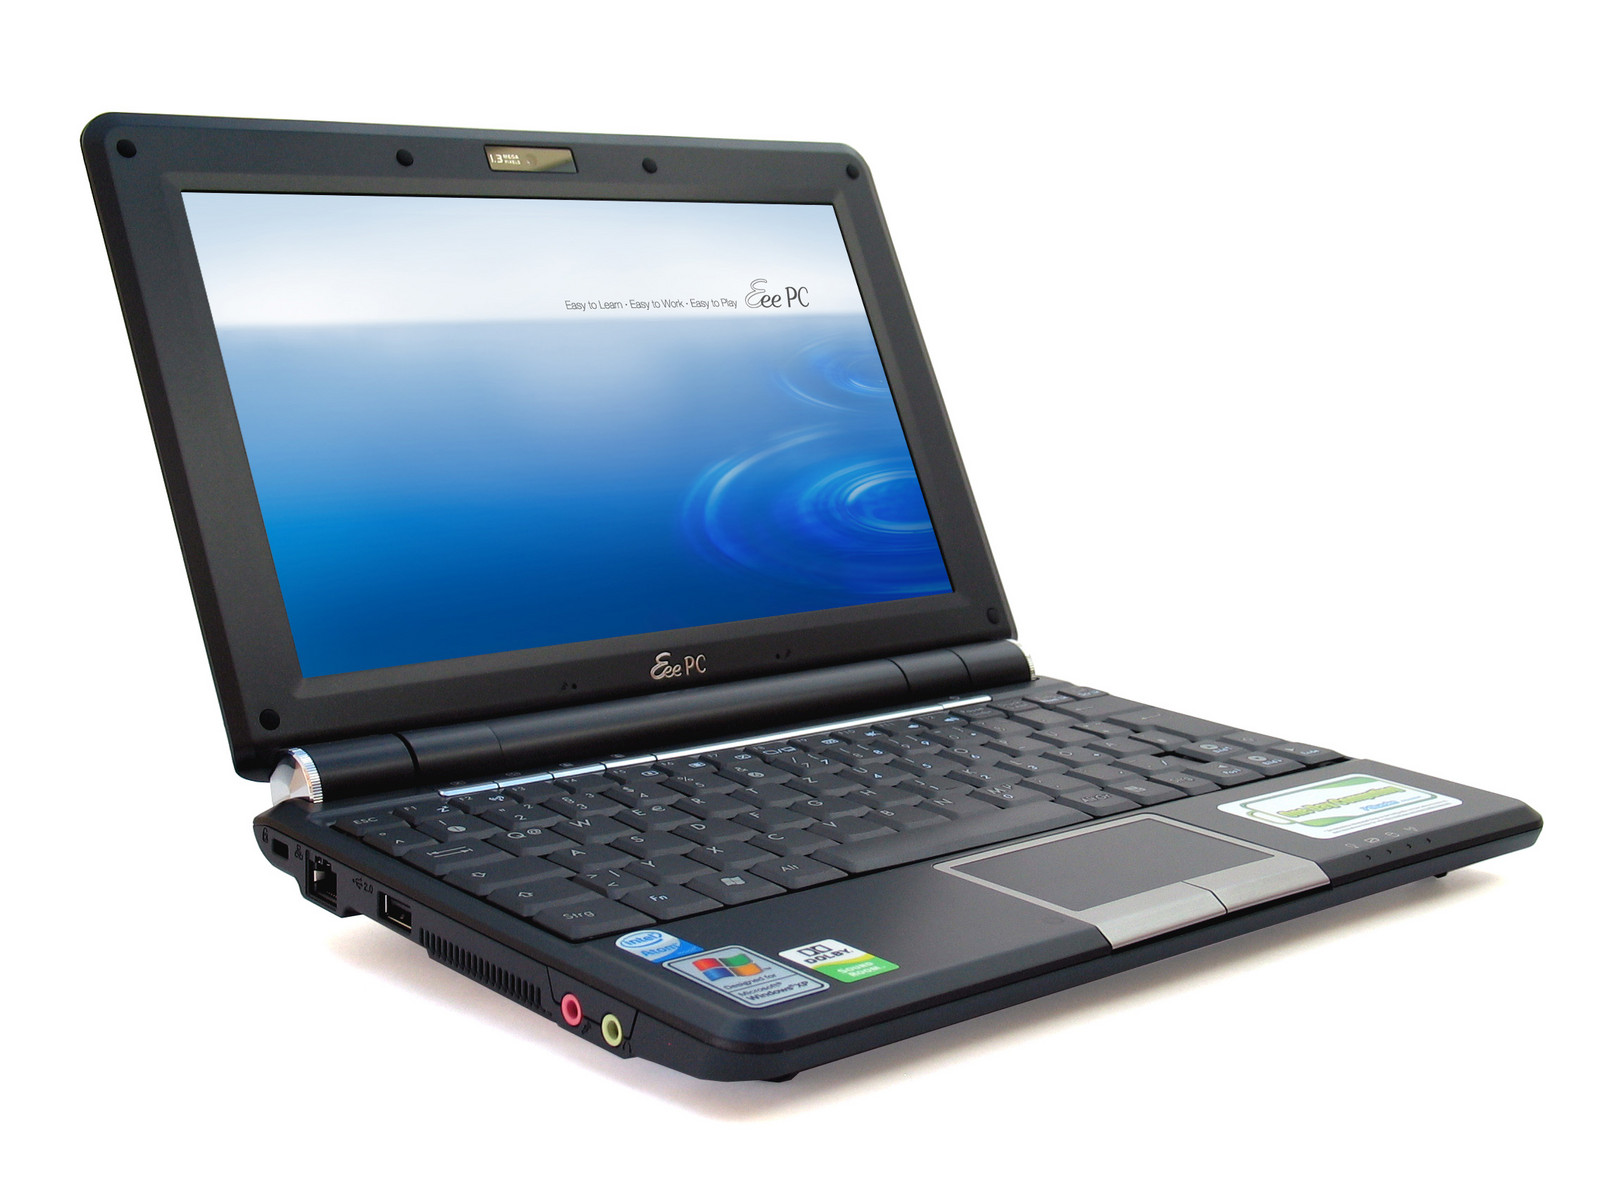 HP MINI 110-1131DX NOTEBOOK IDT HD AUDIO DRIVERS DOWNLOAD FREE